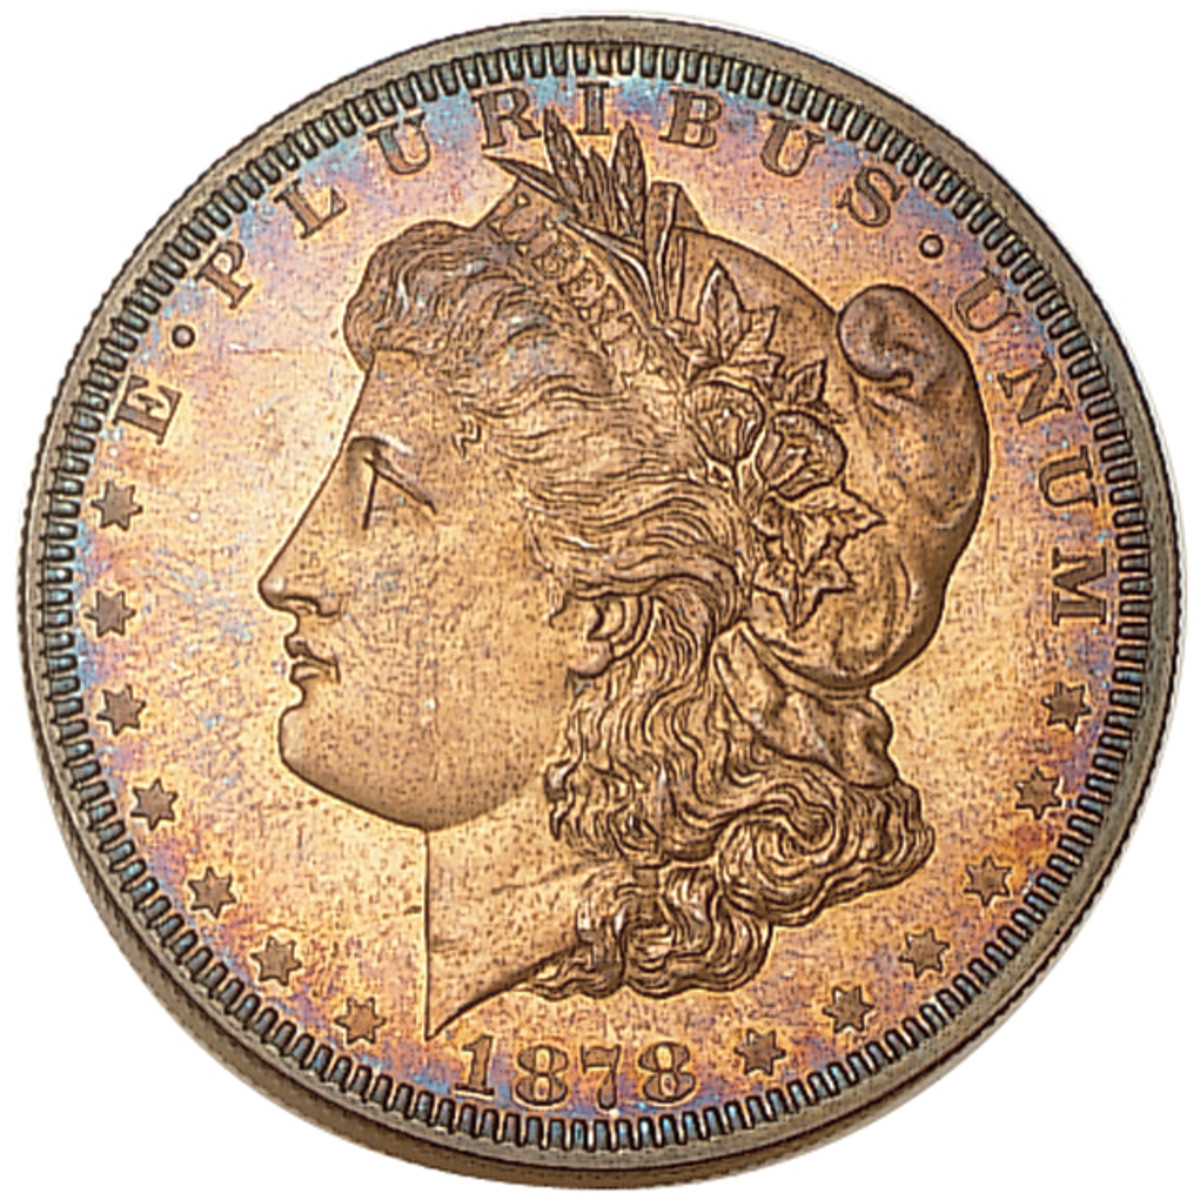 Find out why Morgan dollars have a good track record in growing demand and value.